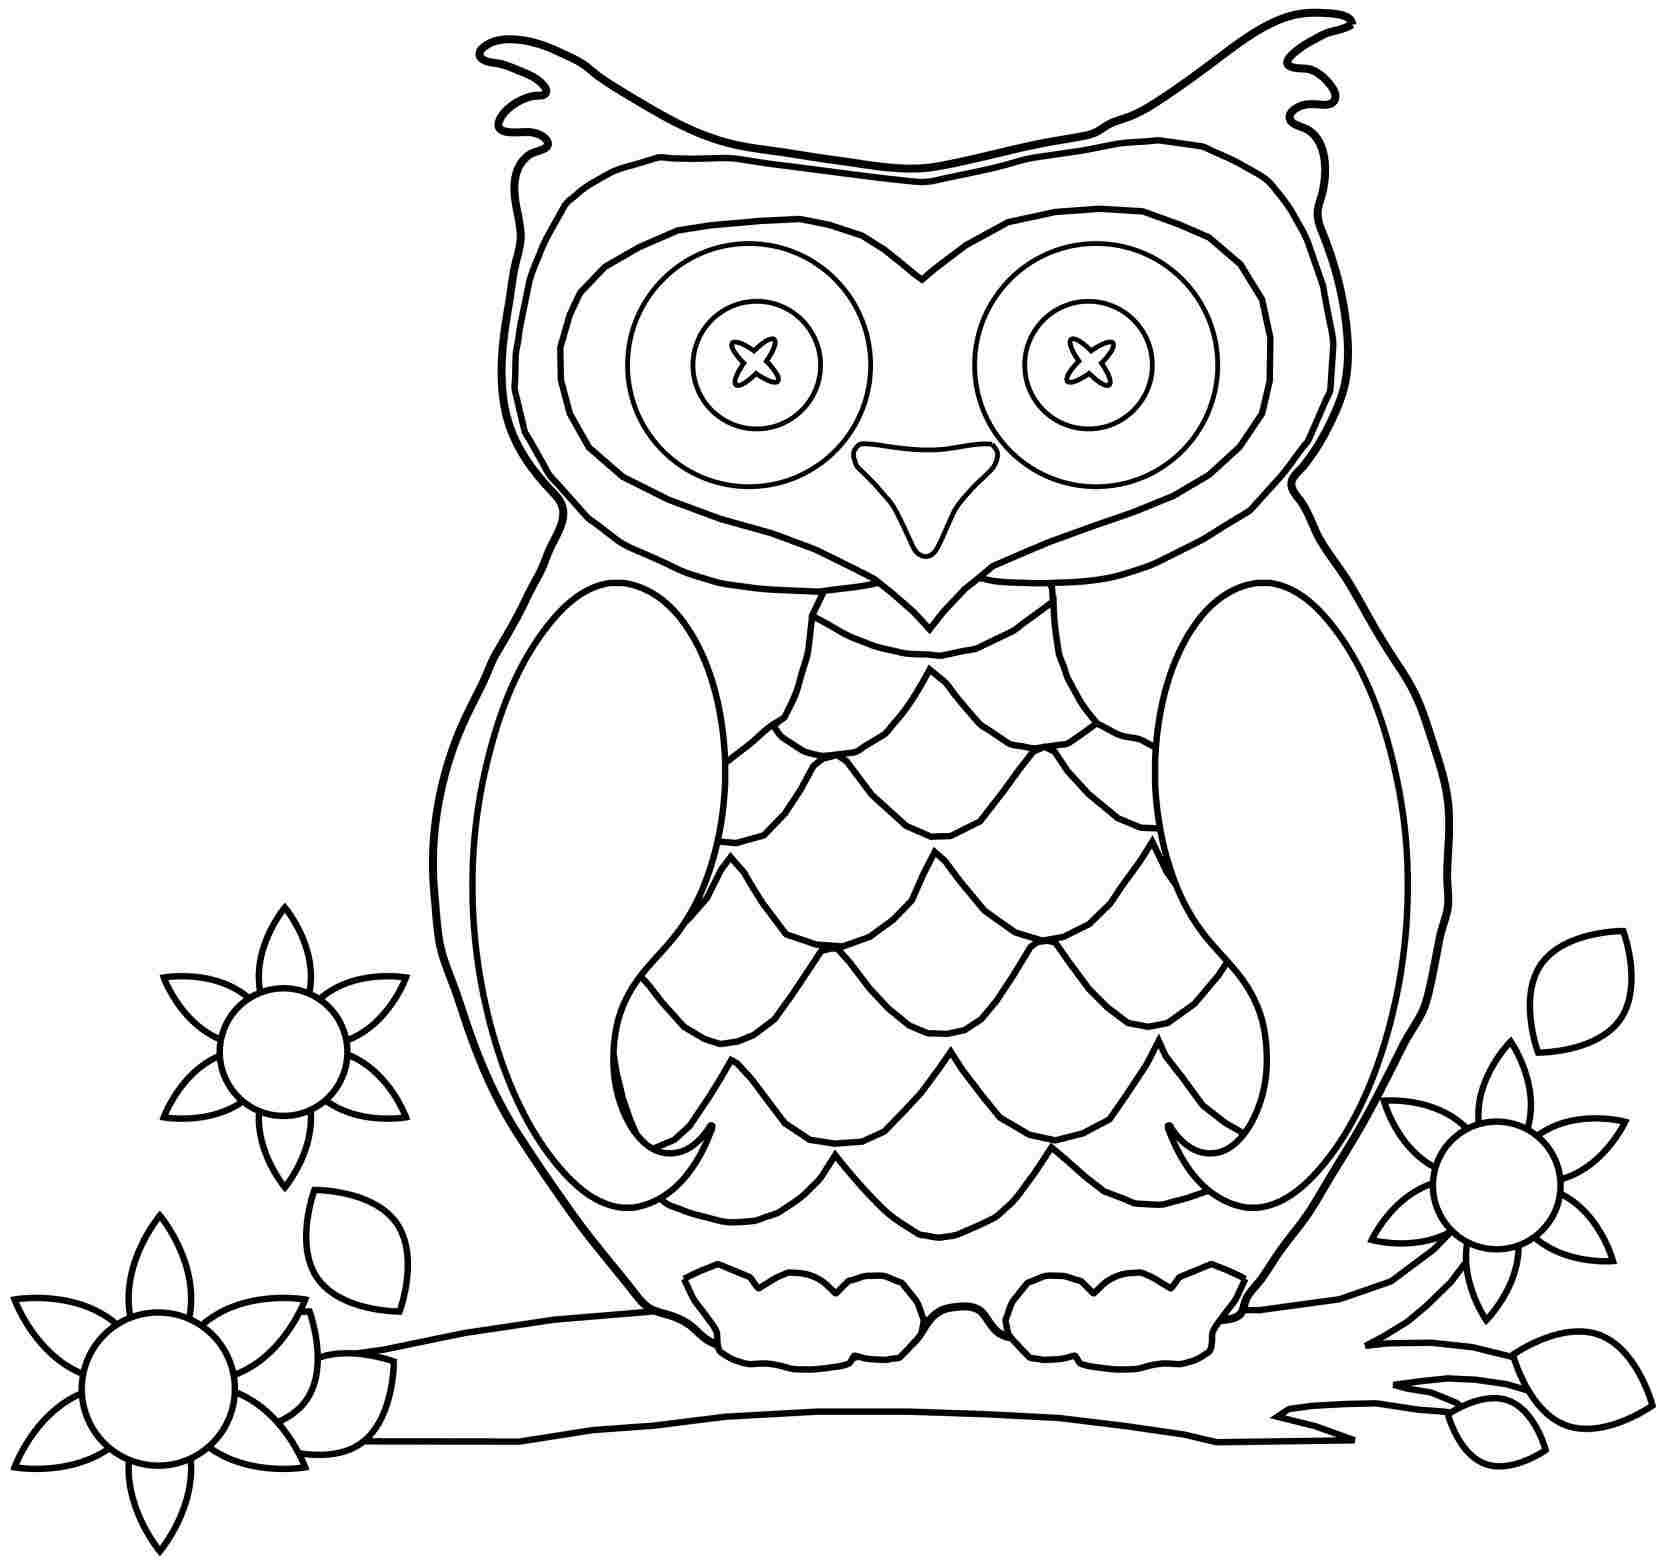 printable owl picture owl printable coloring pages - Printable Owl Pictures